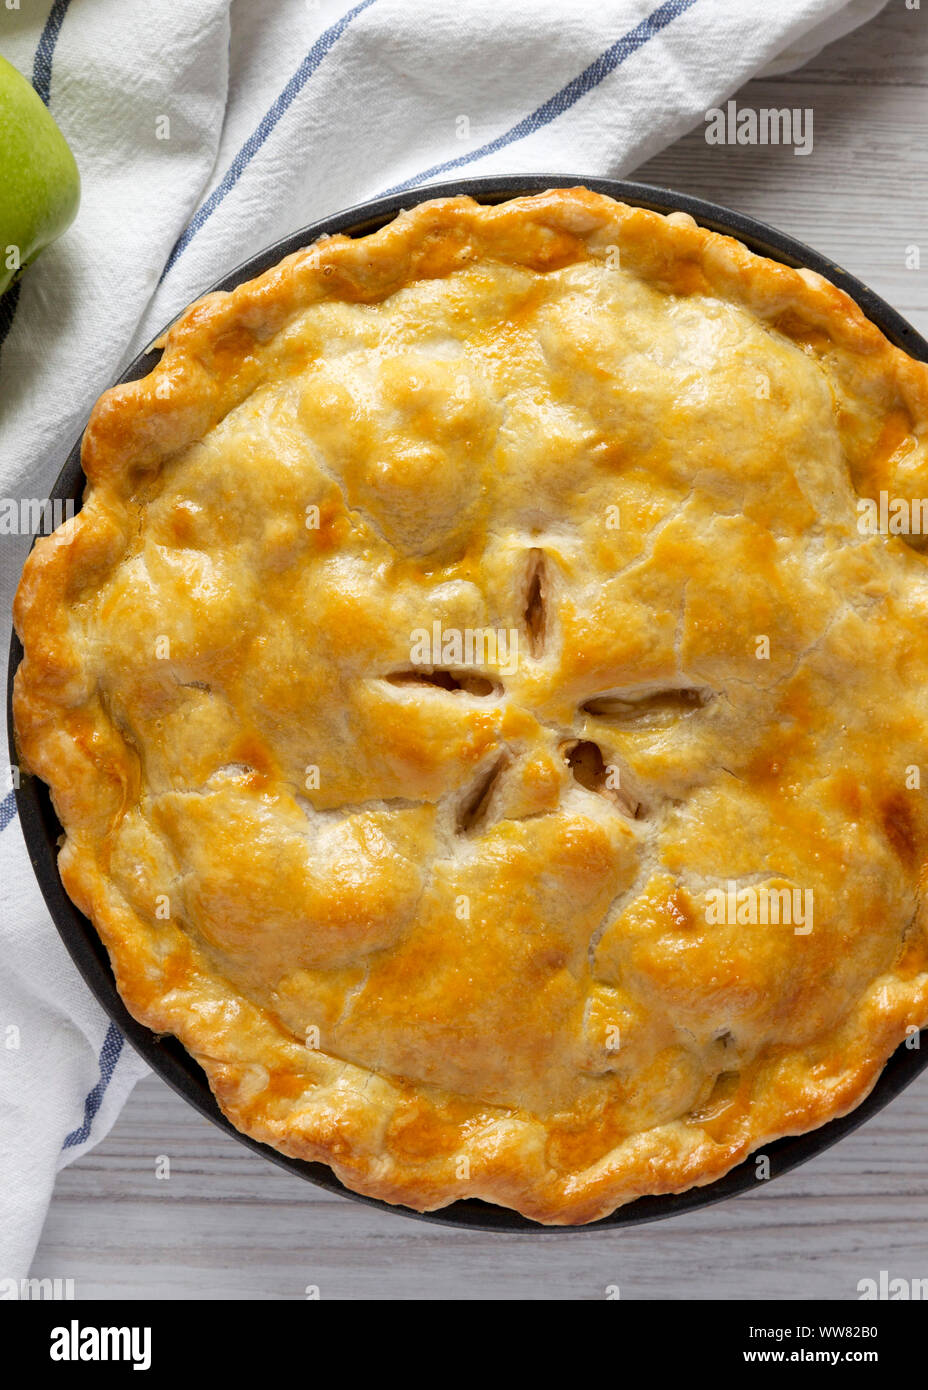 Homemade apple pie on a white wooden background, top view. Flat lay, overhead, from above. Close-up. Stock Photo